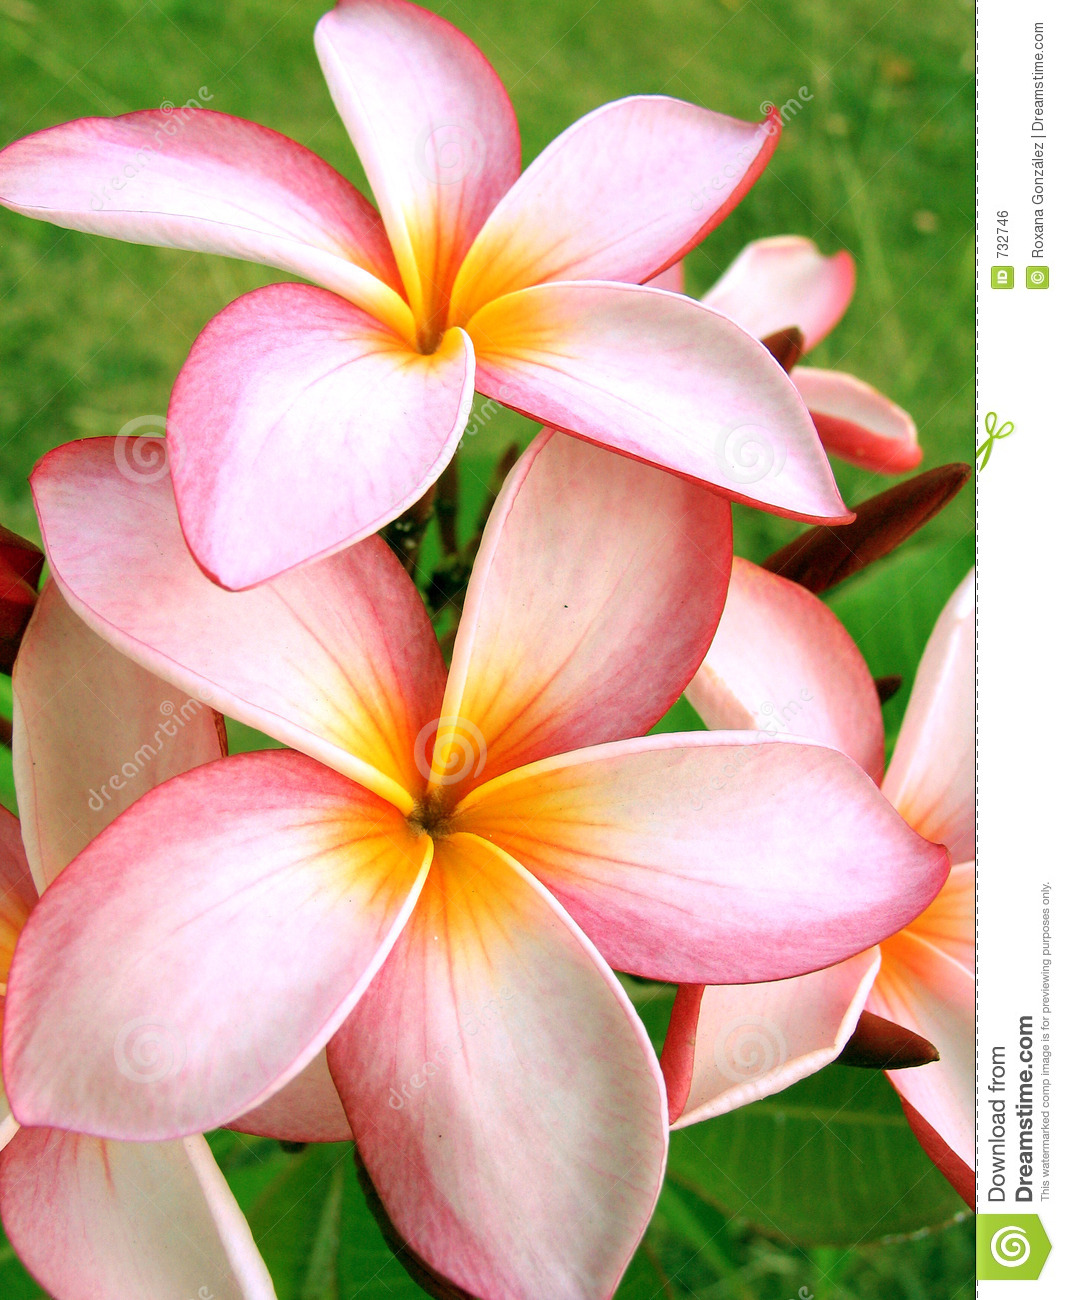 Tropical Flowers Royalty Free Stock Image - Image: 732746